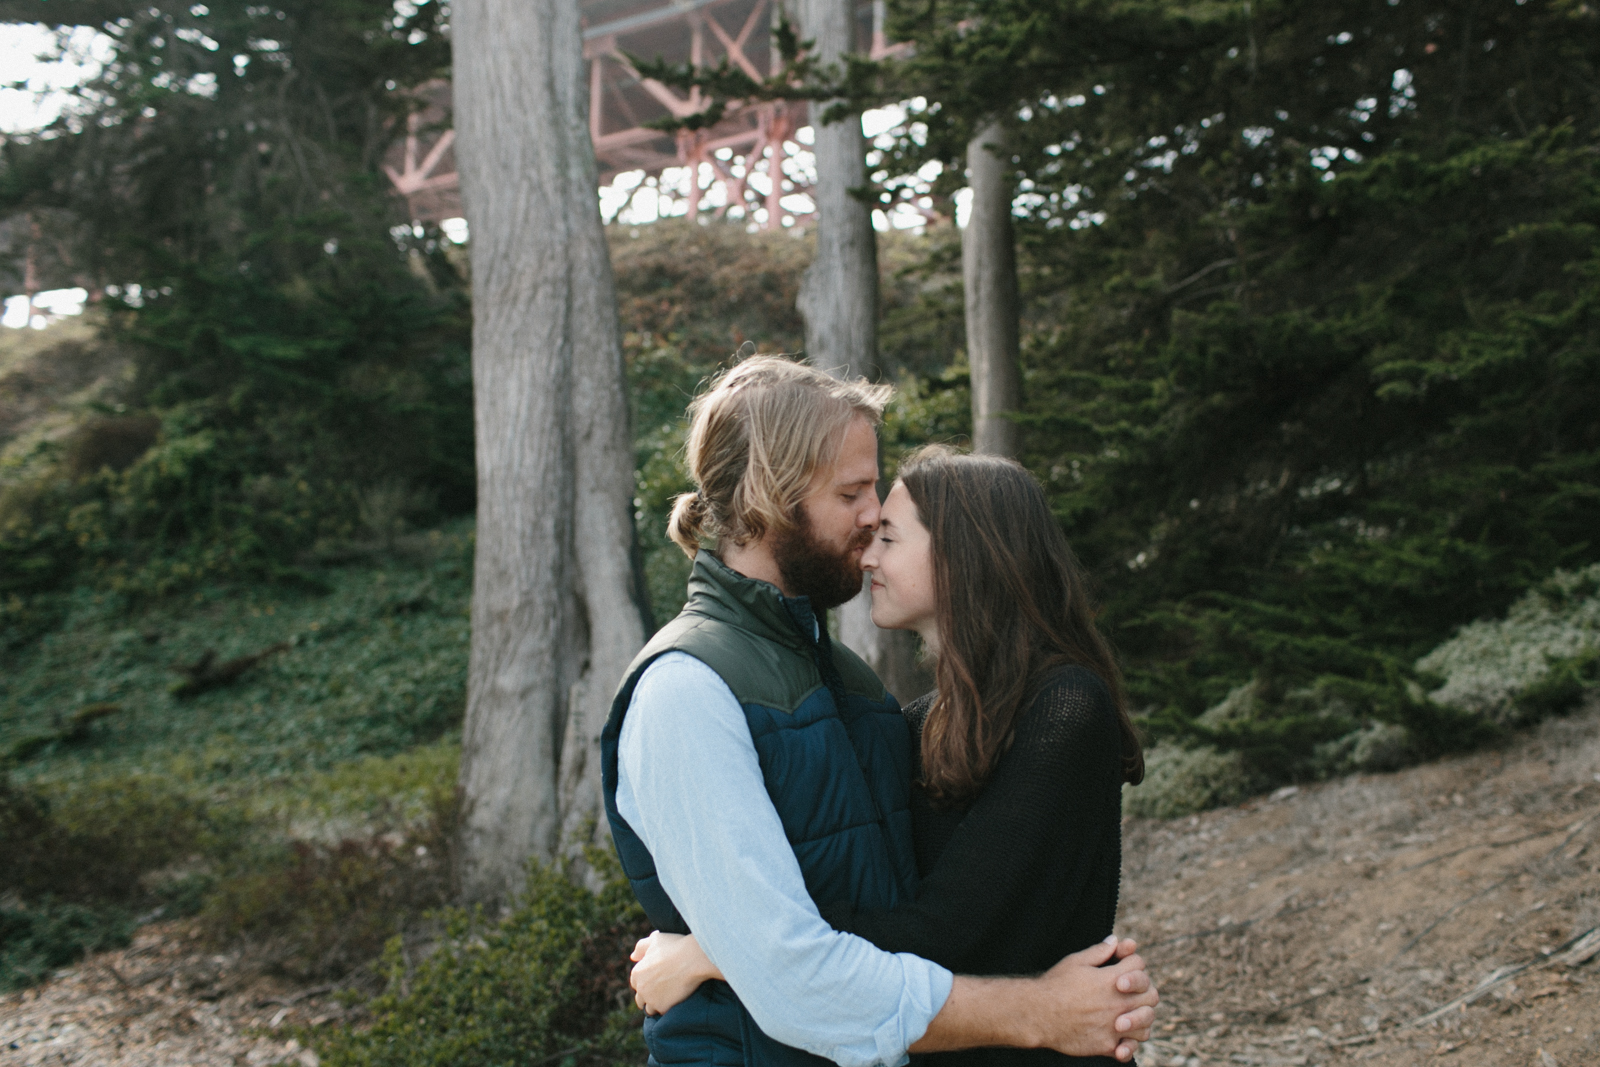 San Francisco Engagement Photography by Bay Area Wedding Photographer Mae Stier-015.jpg